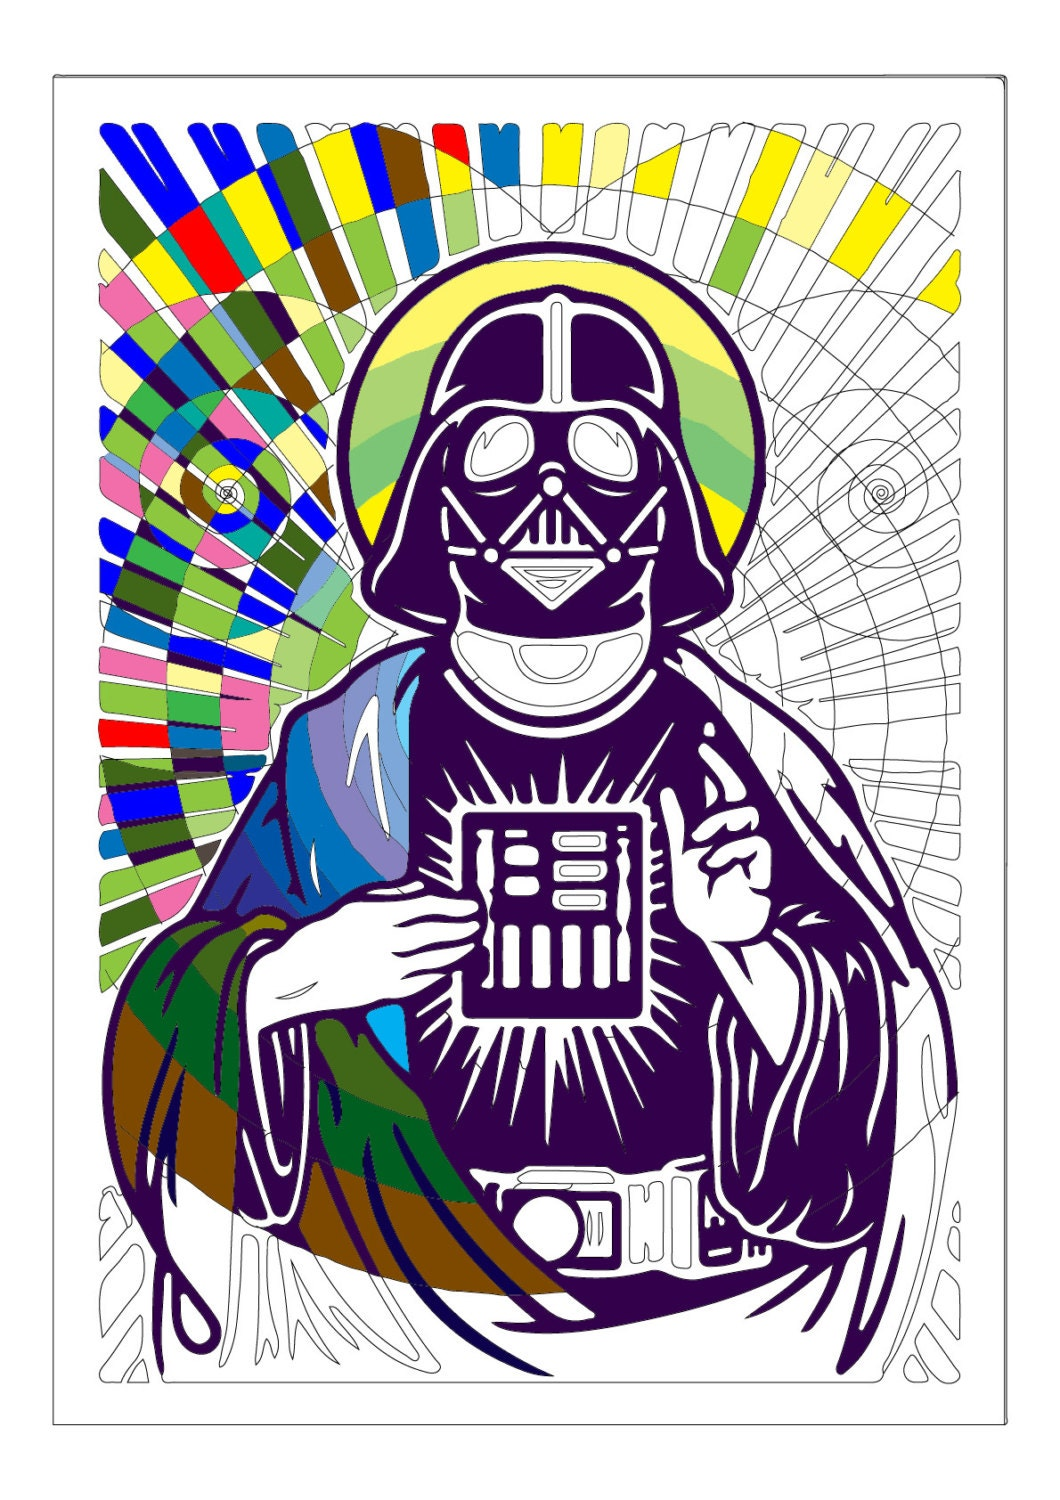 pop art darth vader the preacher star wars coloring page. Black Bedroom Furniture Sets. Home Design Ideas